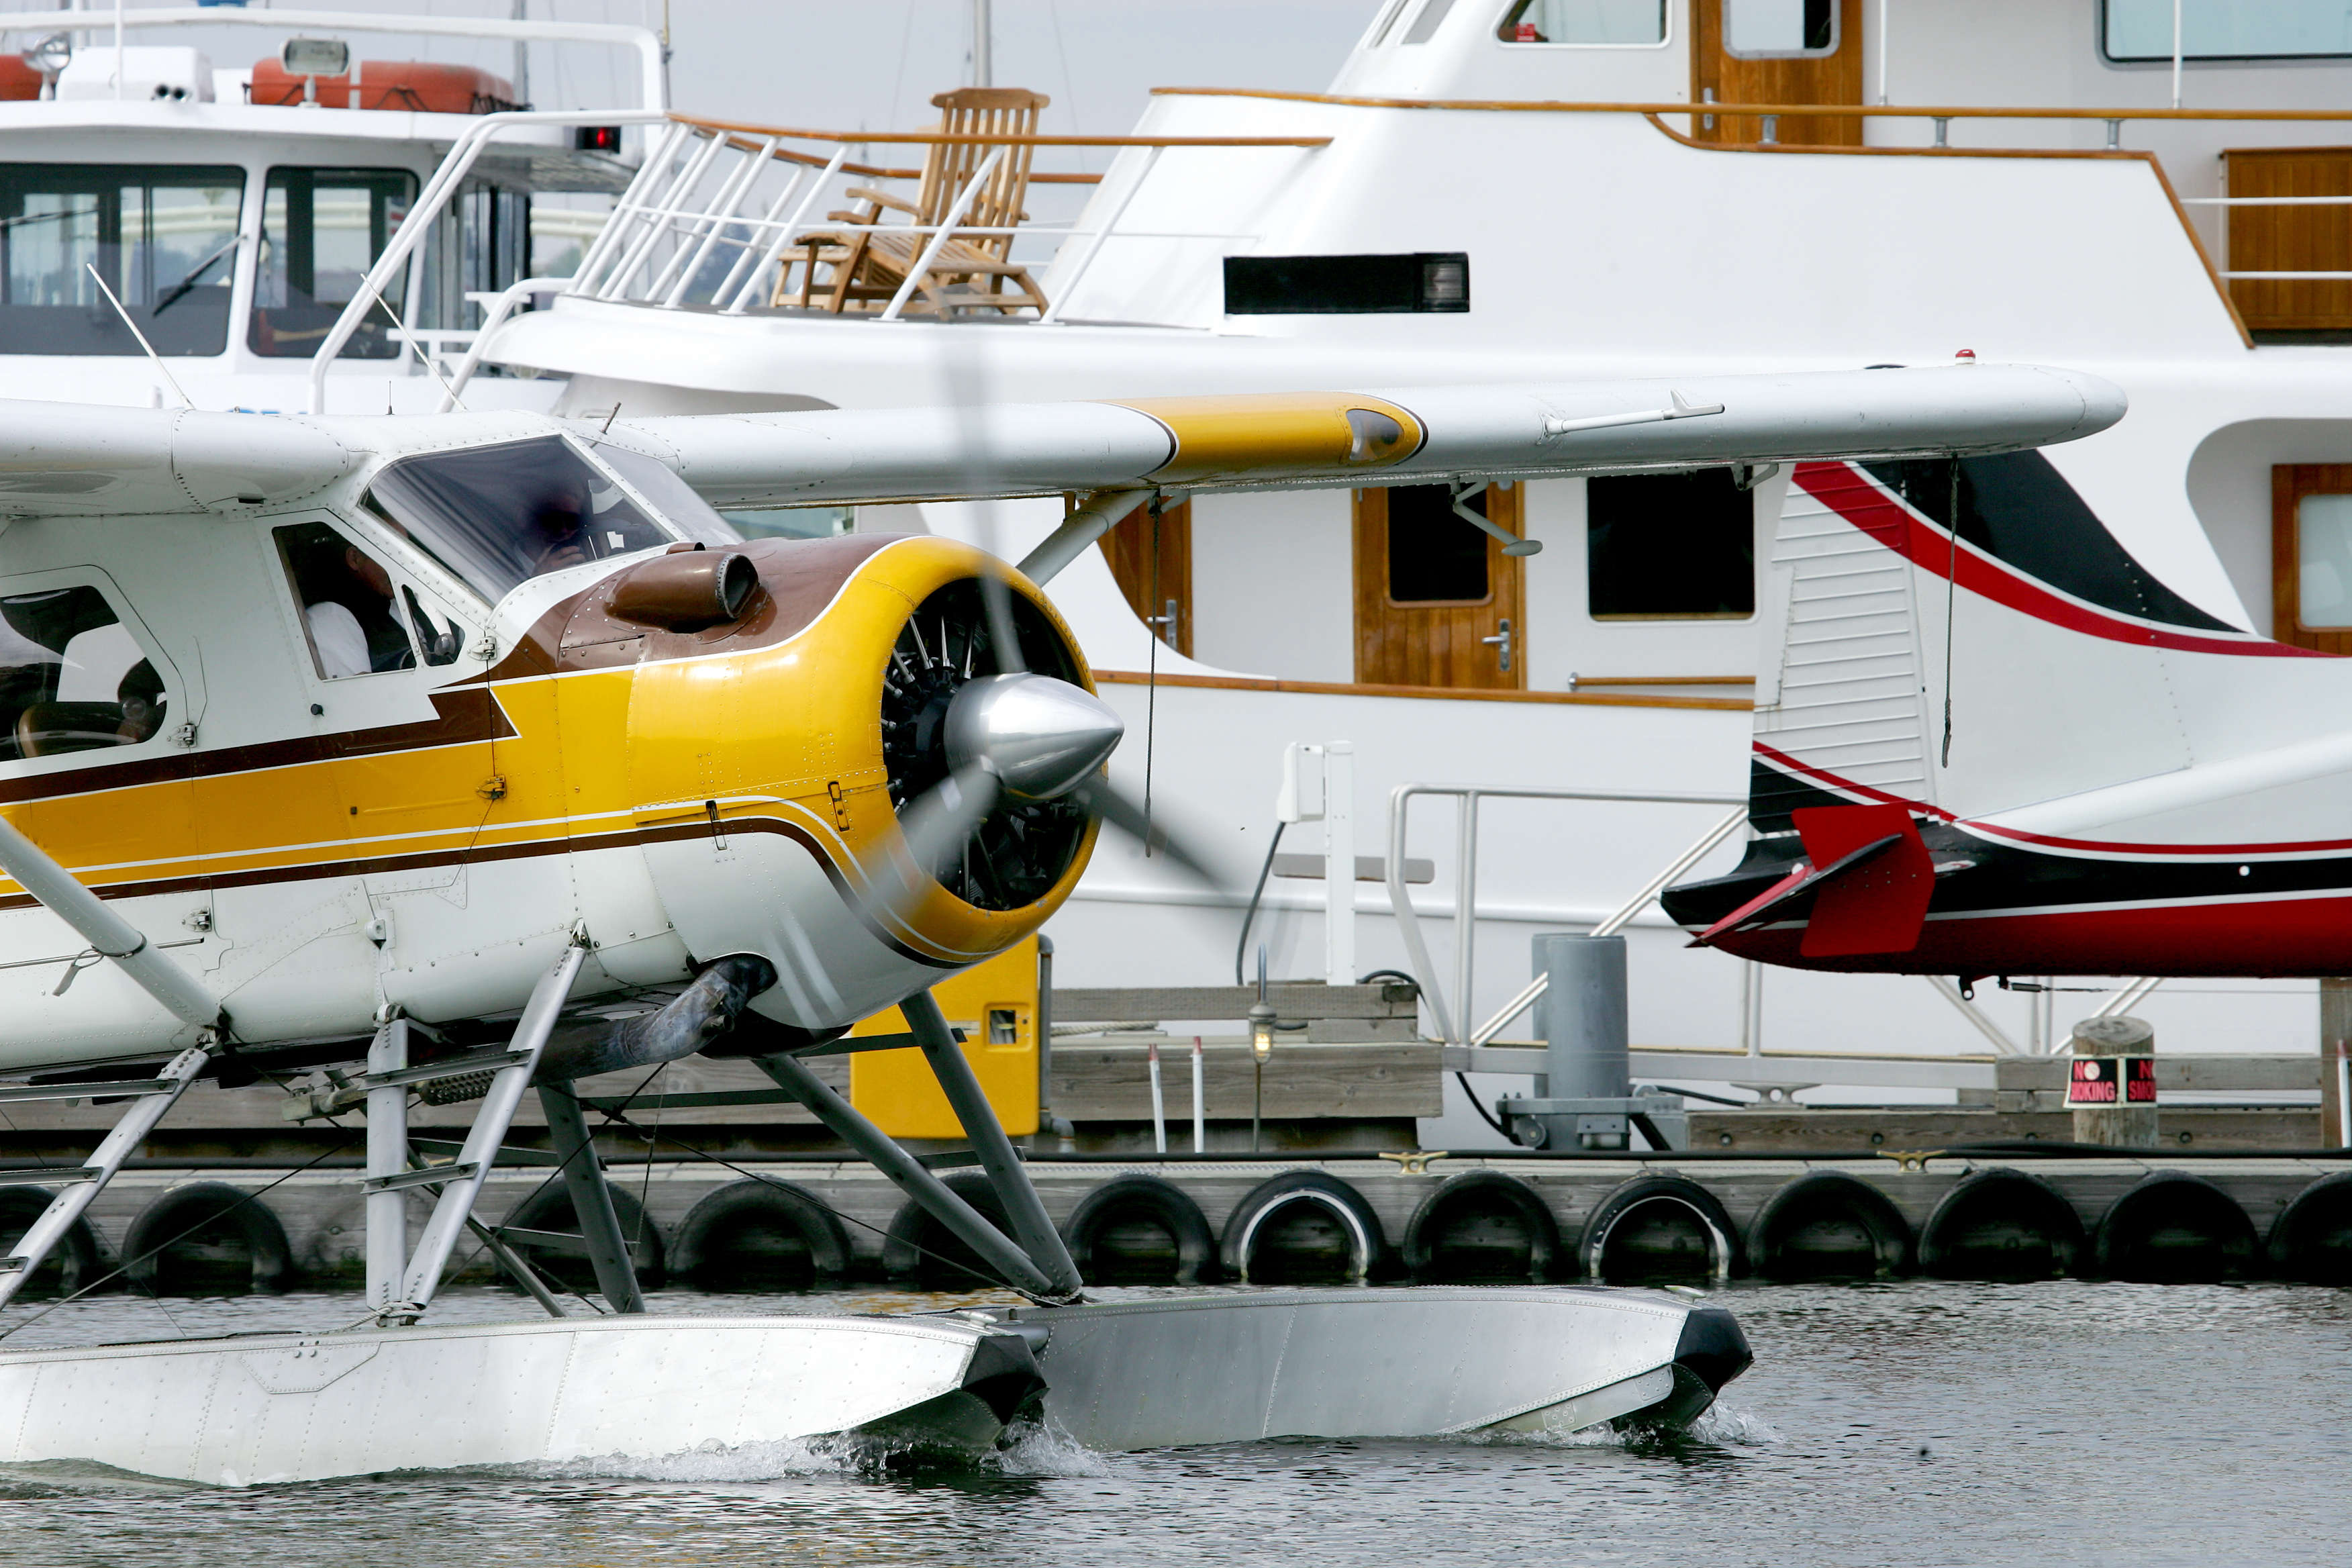 South Lake Union – Seaplane